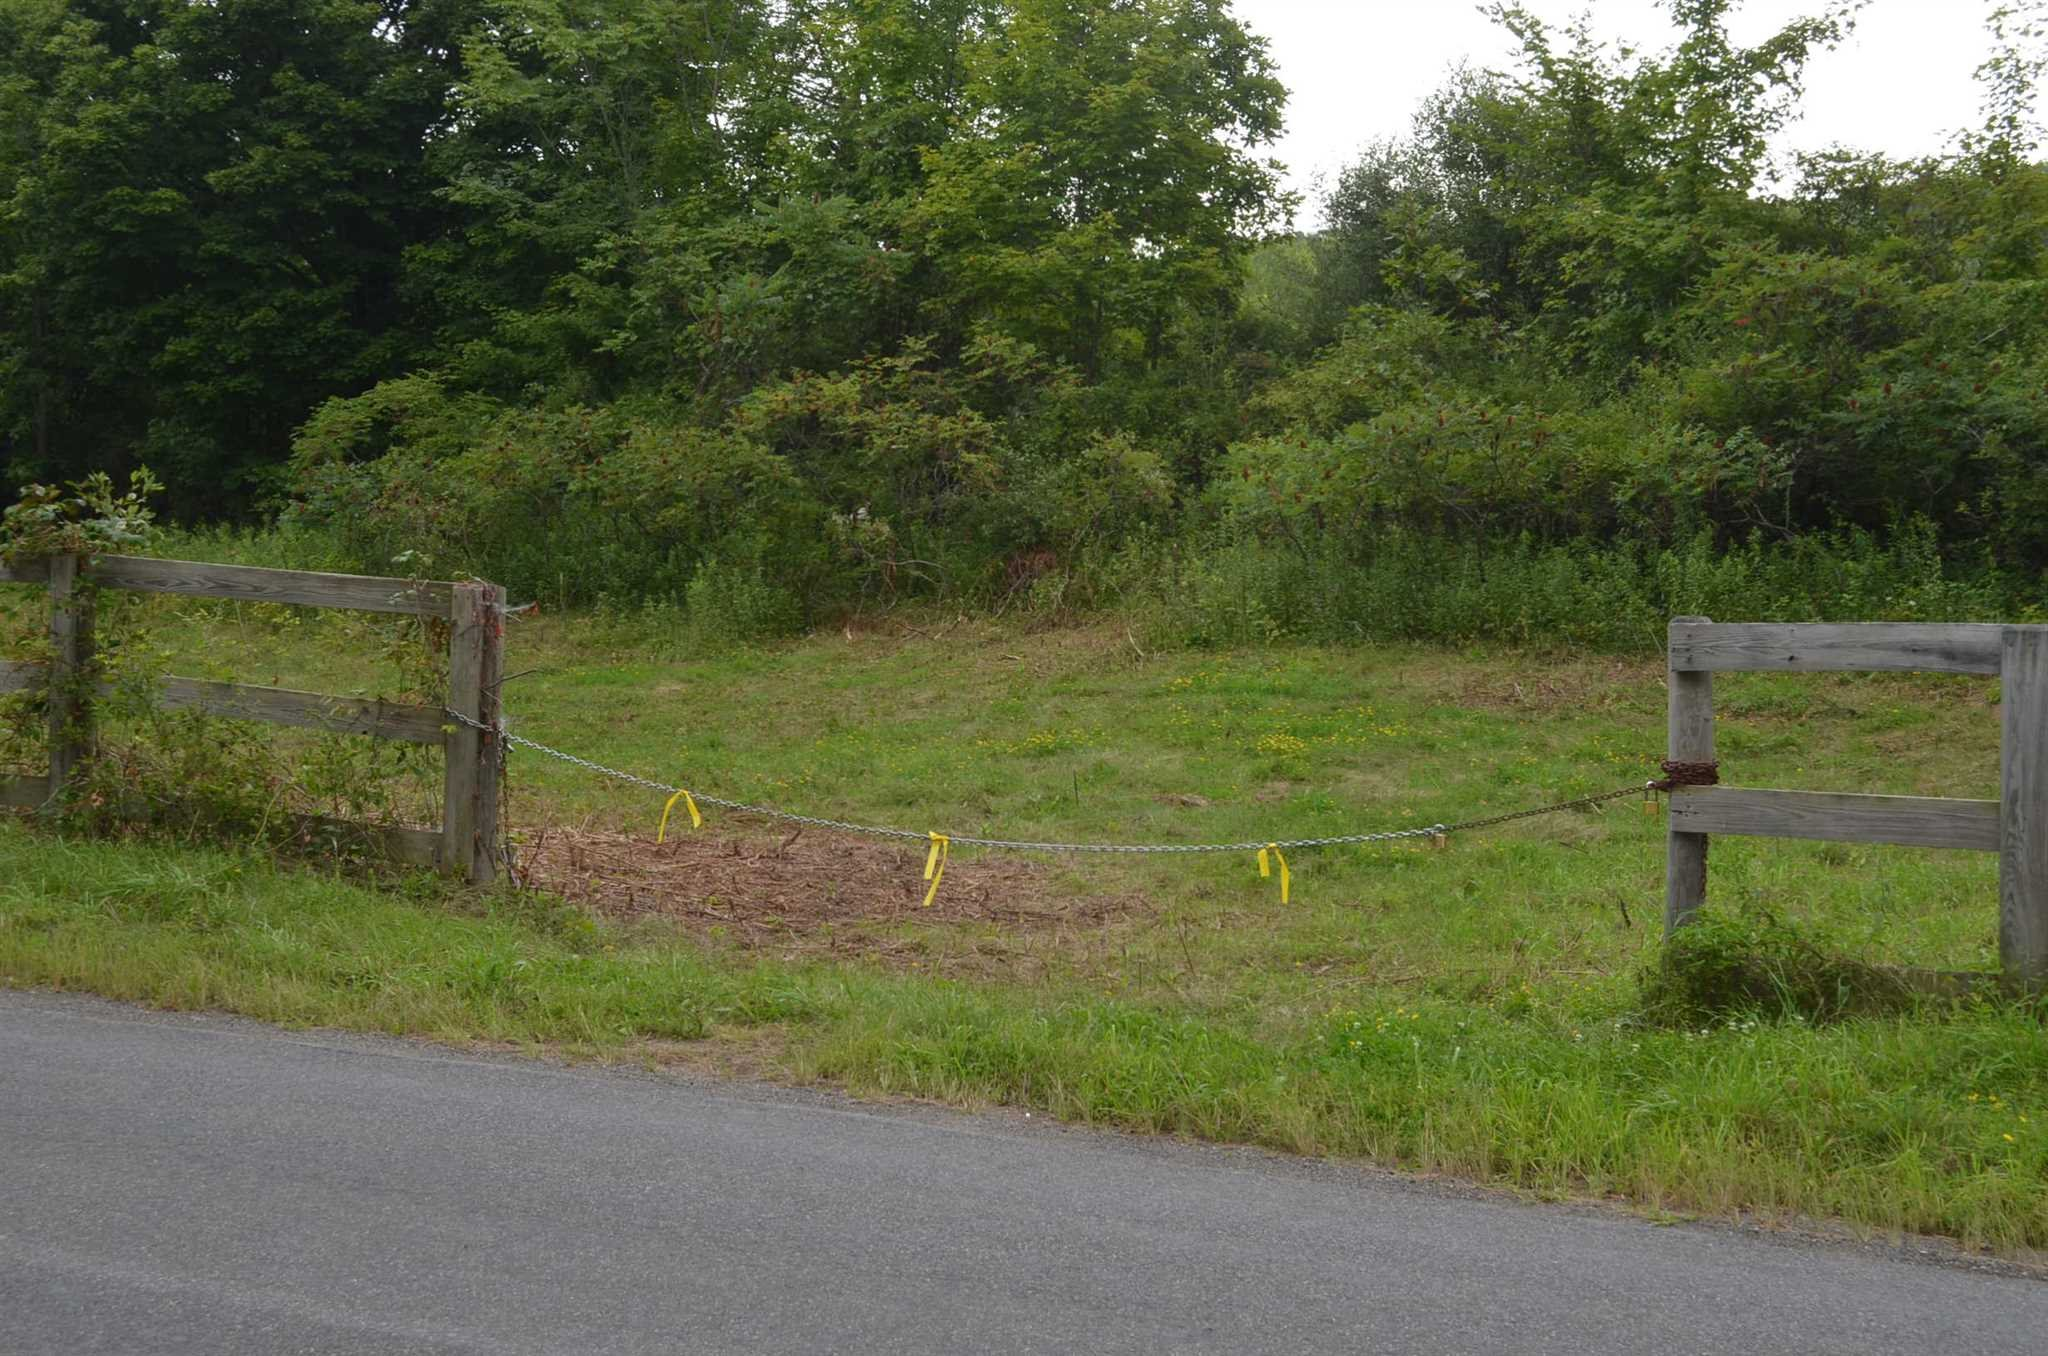 Land for Sale at 29 & 37 ENTERPRISE 29 & 37 ENTERPRISE Rhinebeck, New York 12572 United States